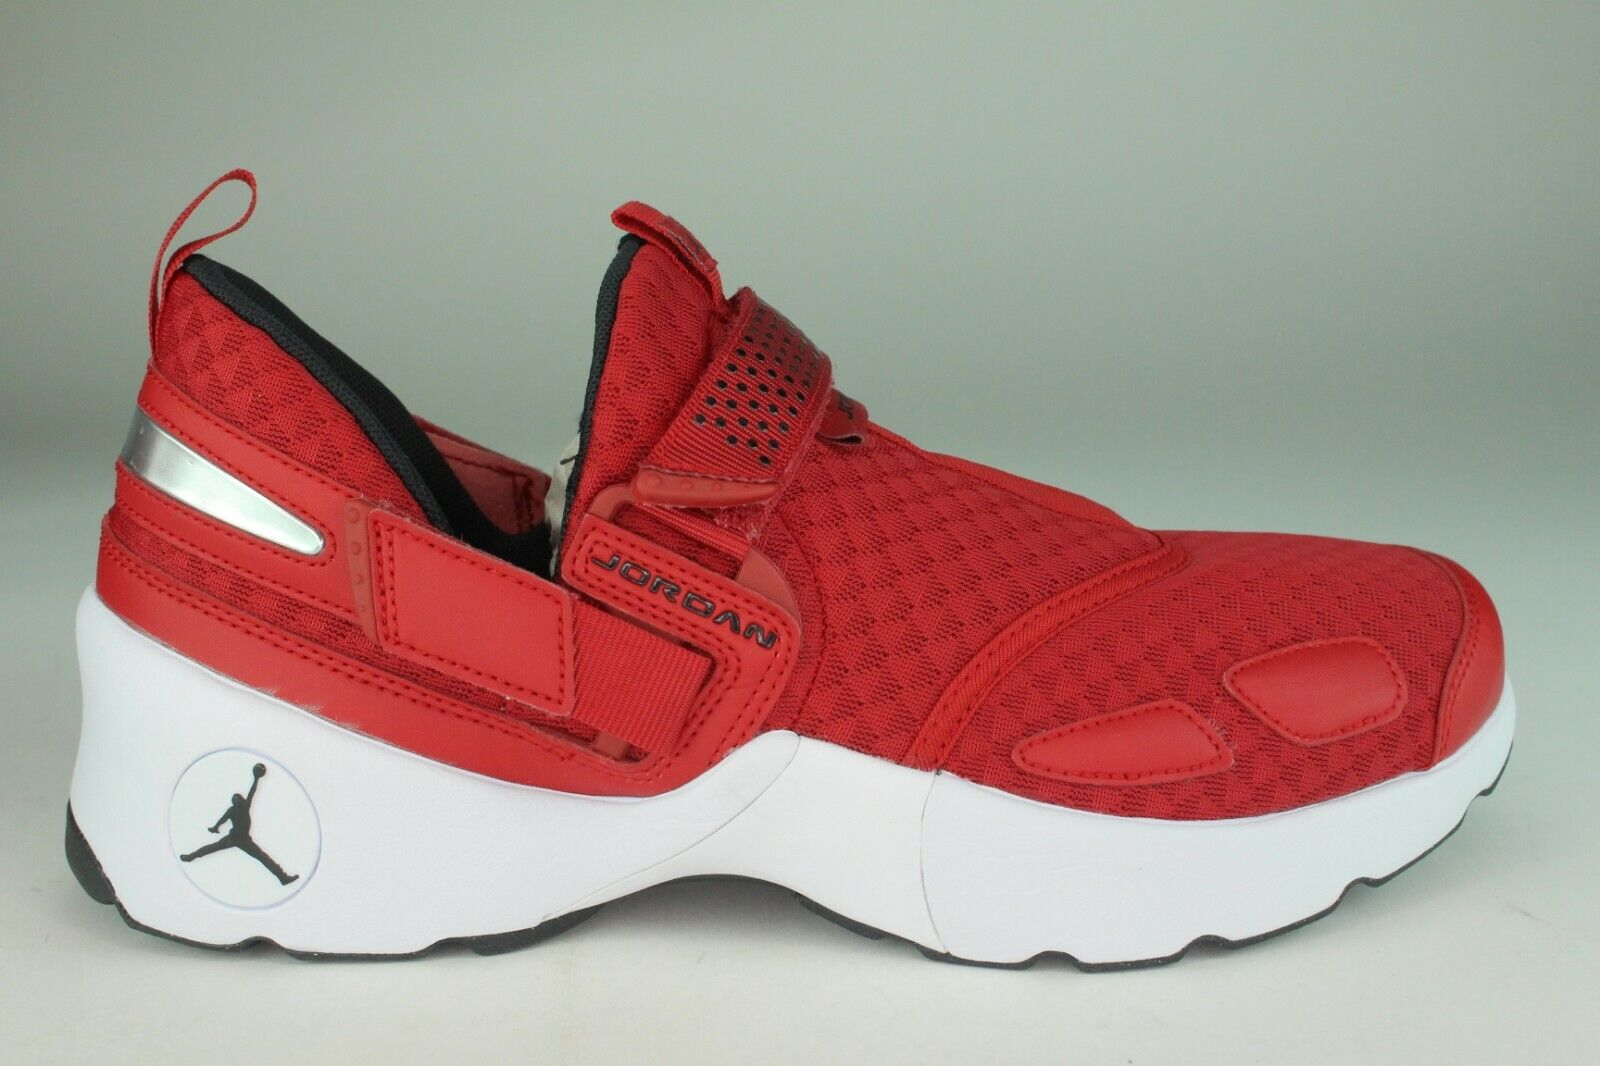 JORDAN TRUNNER LX MEN SIZE 10.5 TO 15.0 GYM RED NEW COMFORTABLE AUTHENTIC